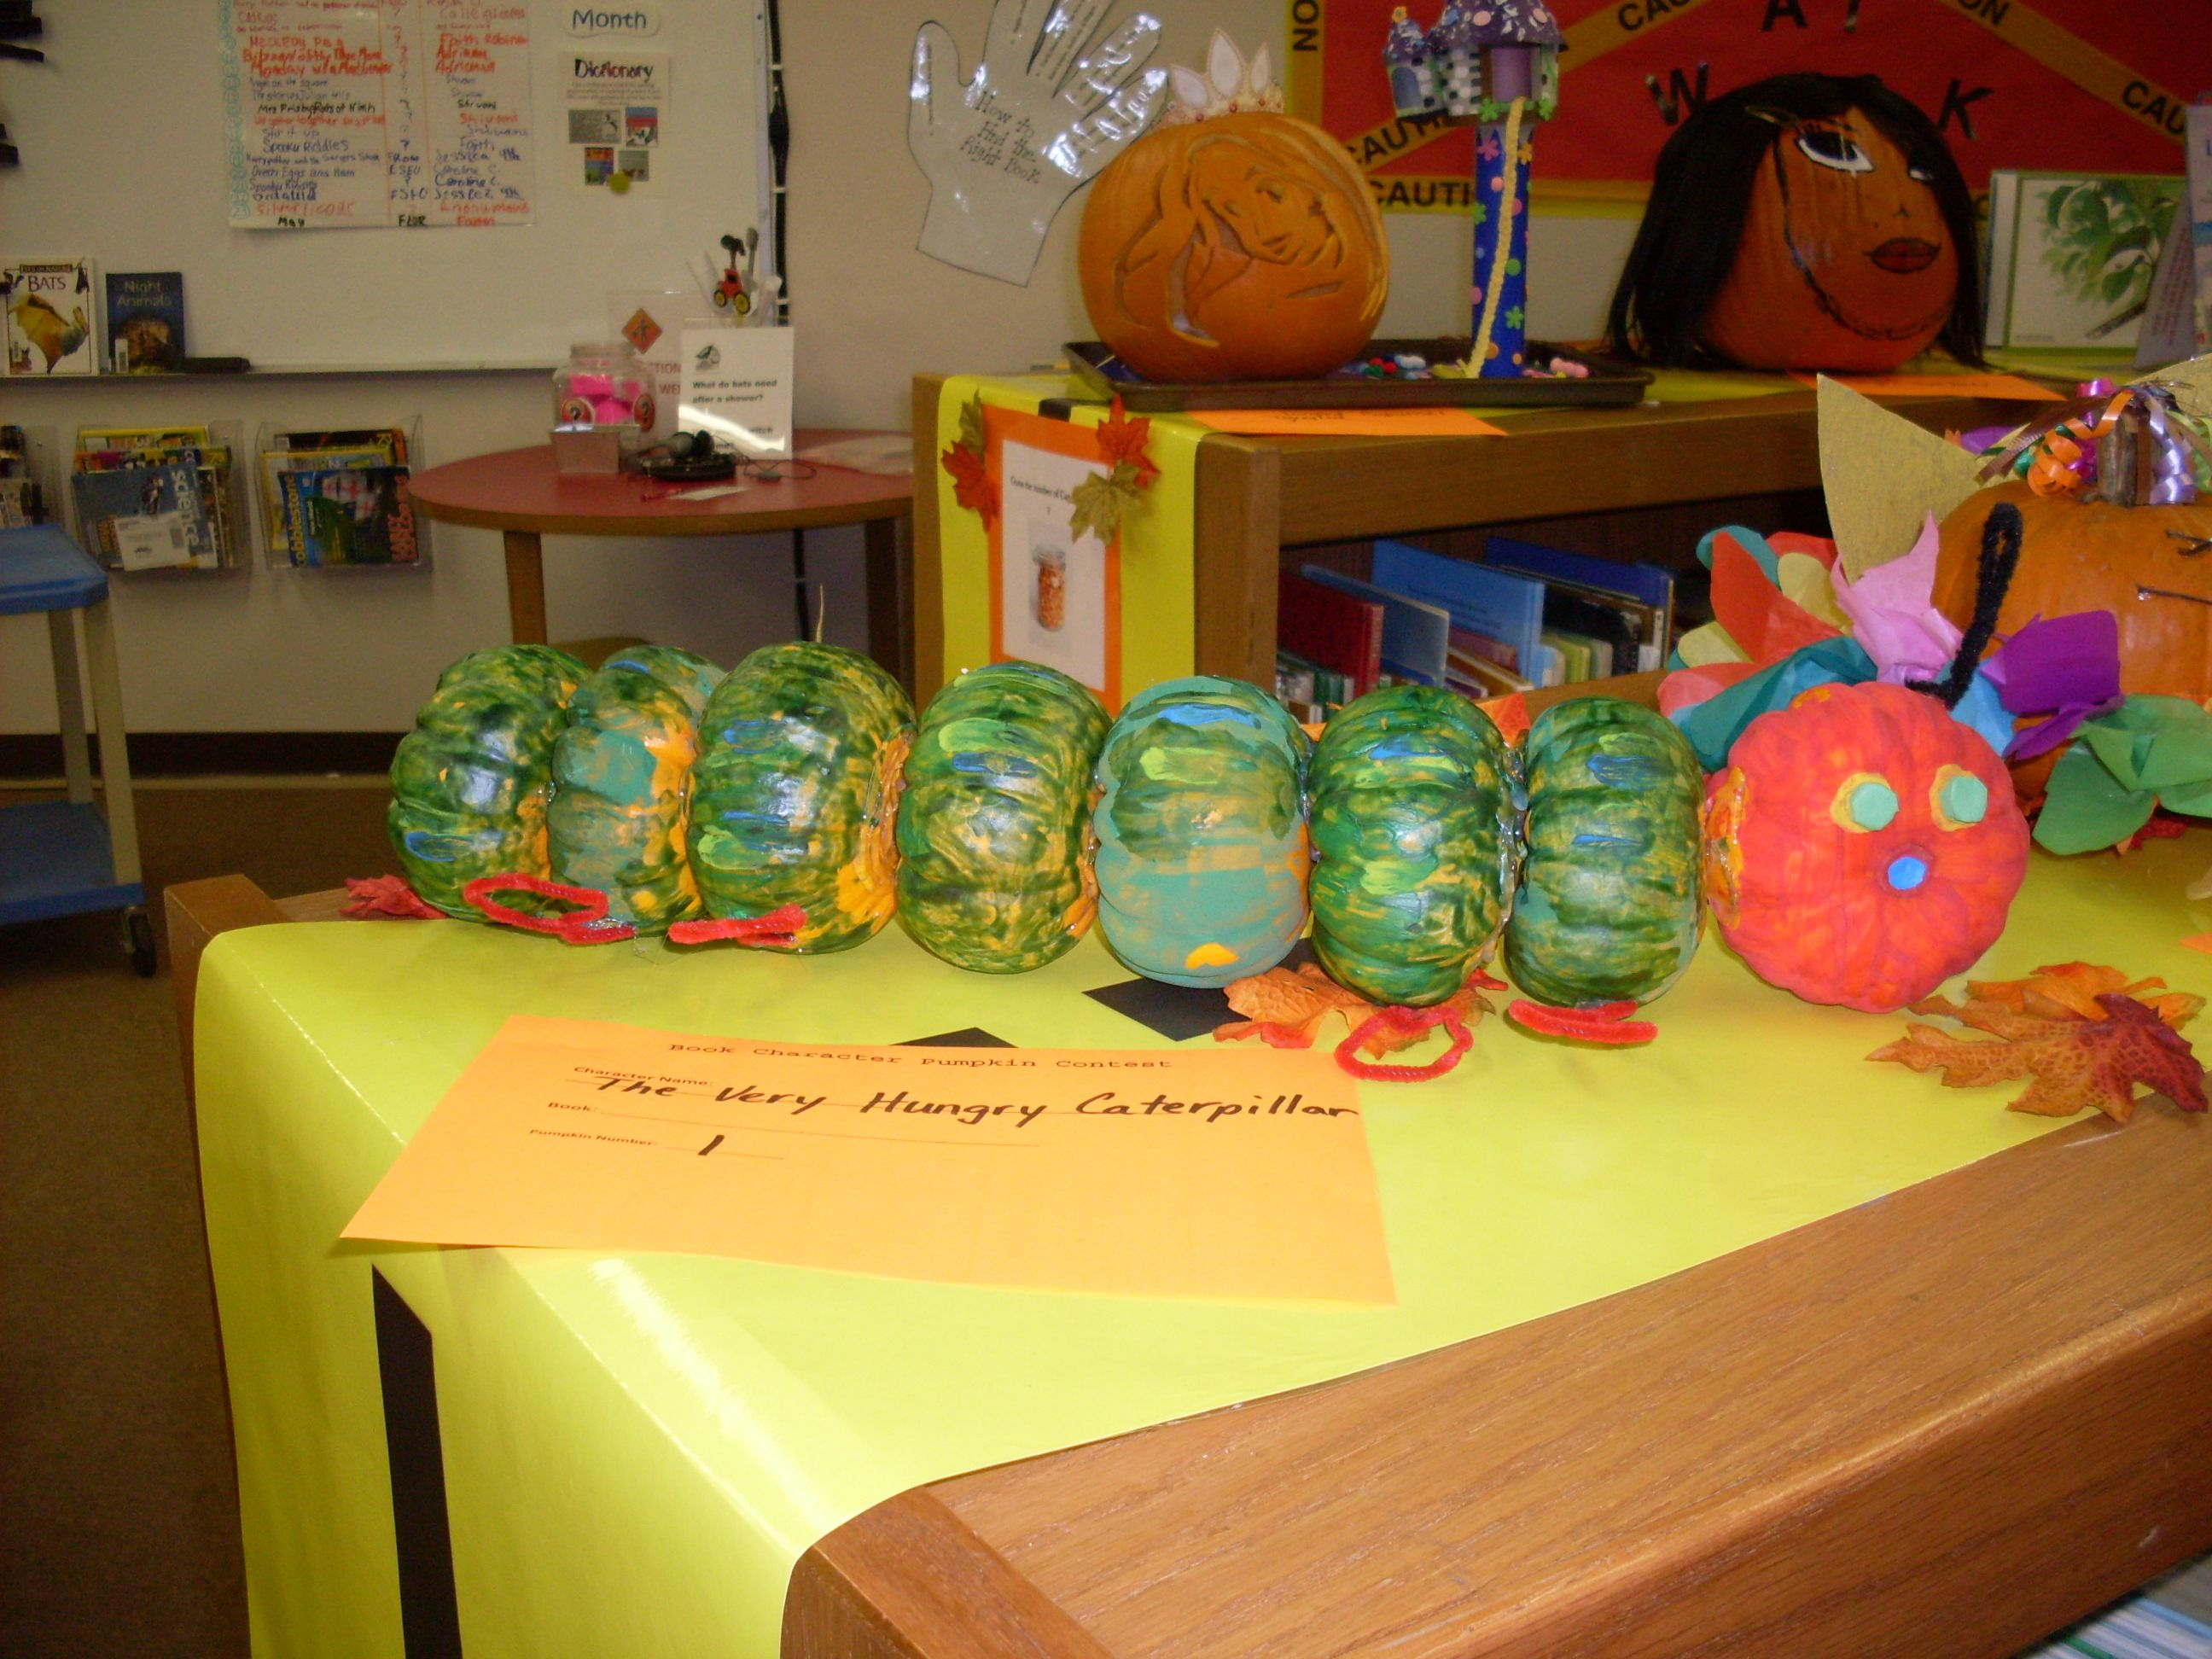 Book A Ween And Book Character Pumpkin Contest Character Pumpkins Book Character Pumpkins Pumpkin Decorating Contest